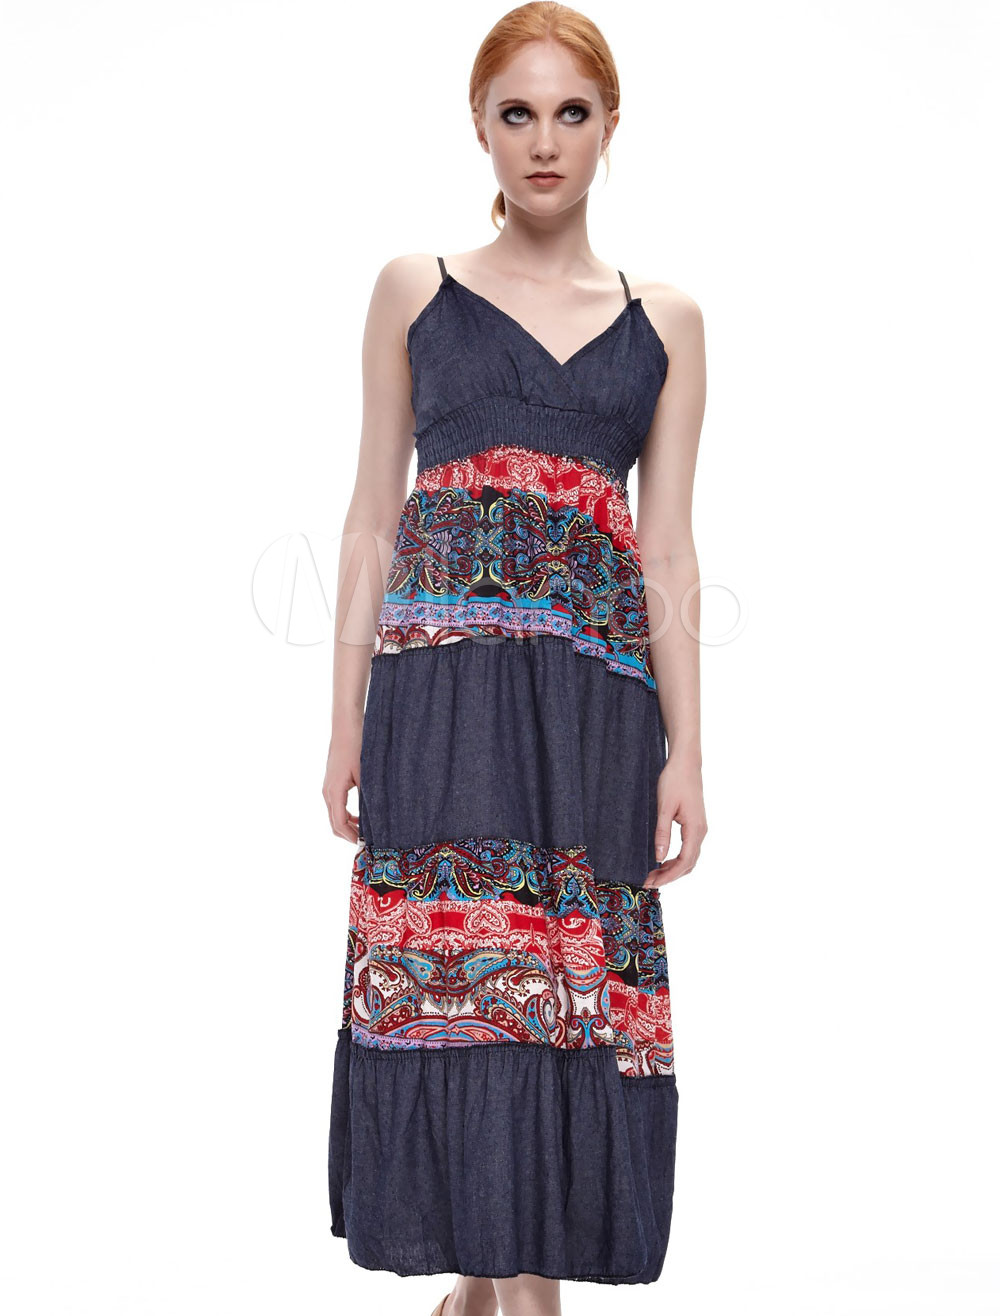 Modern Red Floral Suspender Jeans Fabric Women's Summer Dress